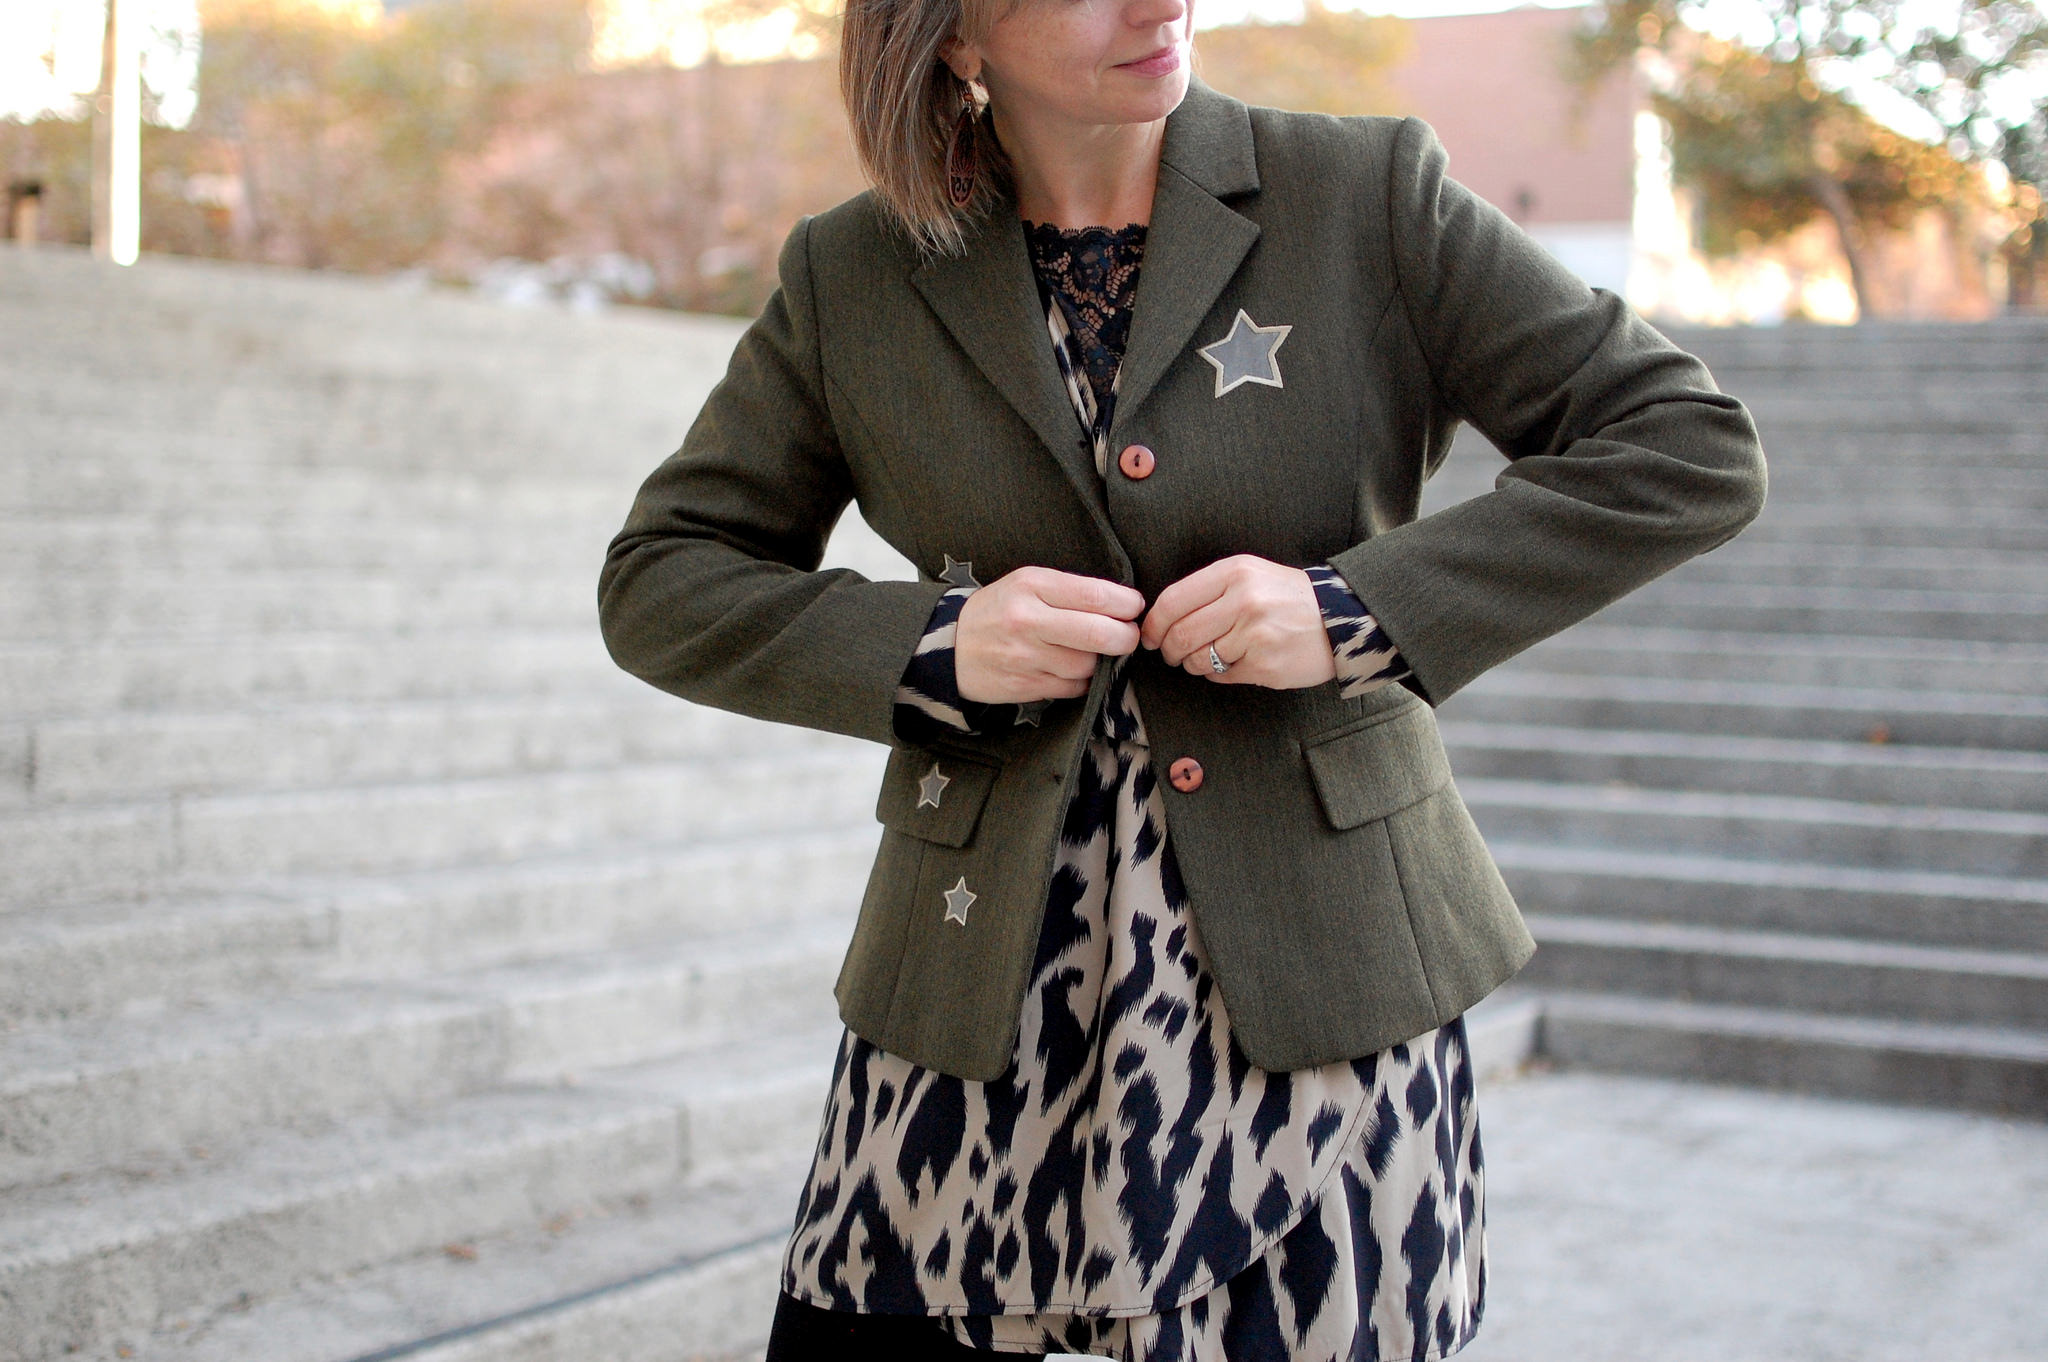 olive military star patch blazer ootd daily outfit blog whatiwore2day